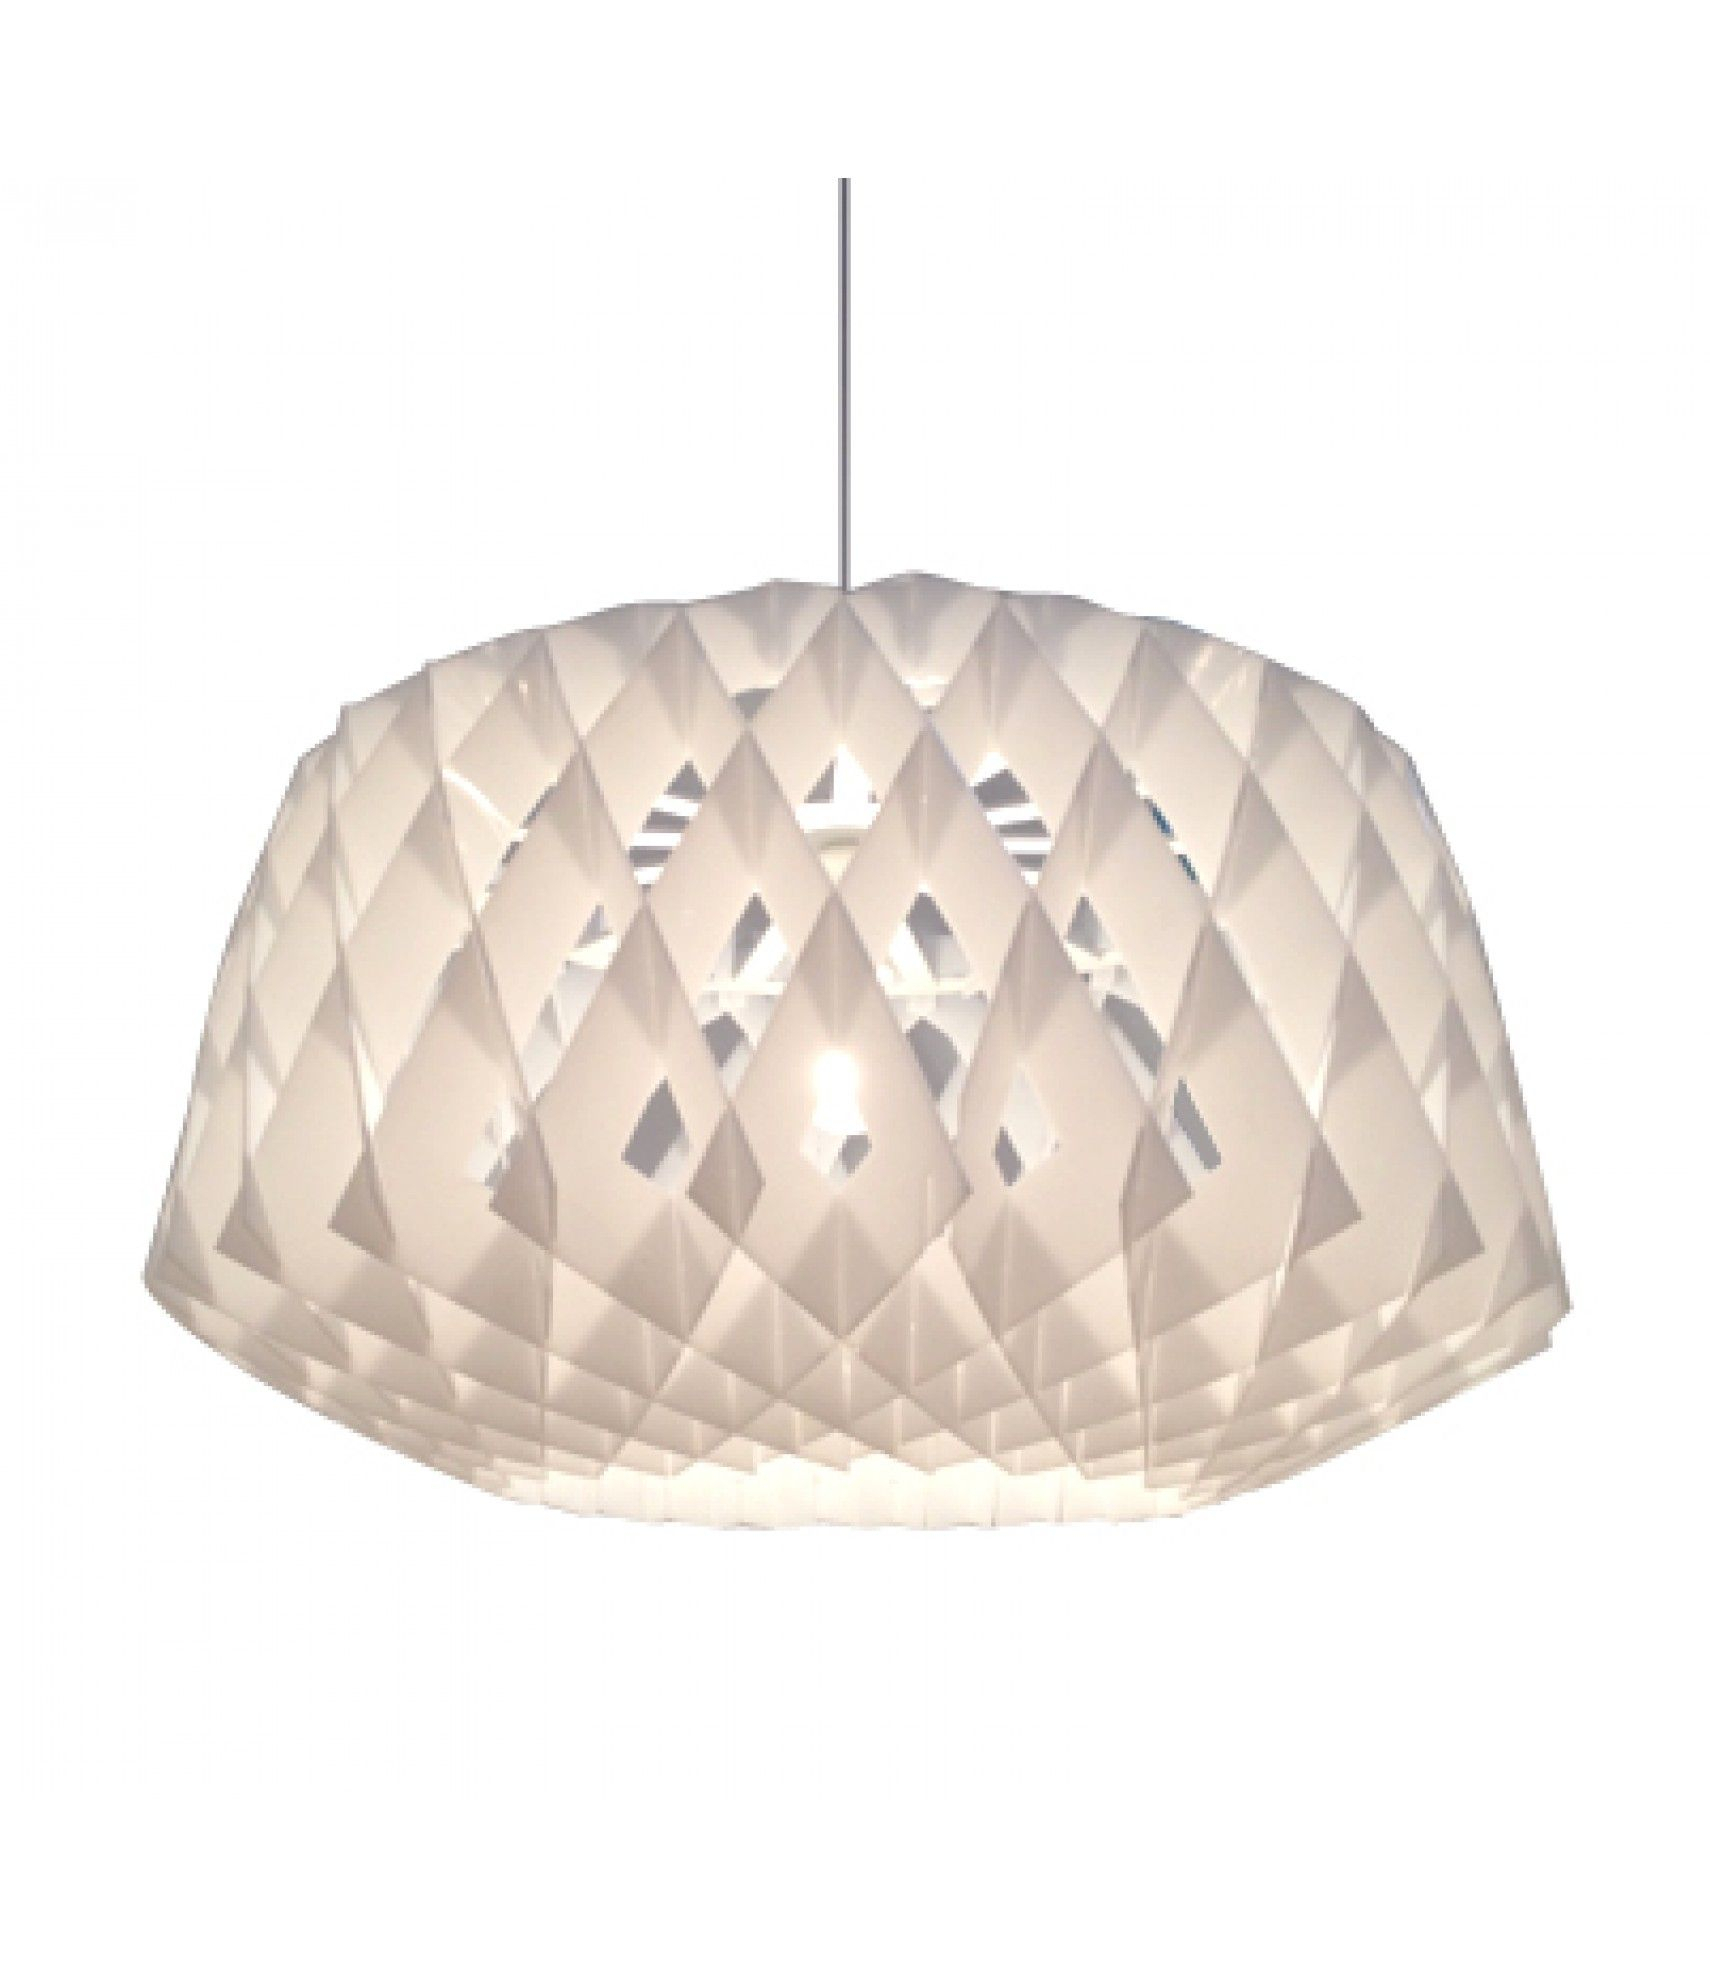 Pinterest – Пинтерест With Regard To Hydetown 1 Light Single Geometric Pendants (View 17 of 30)